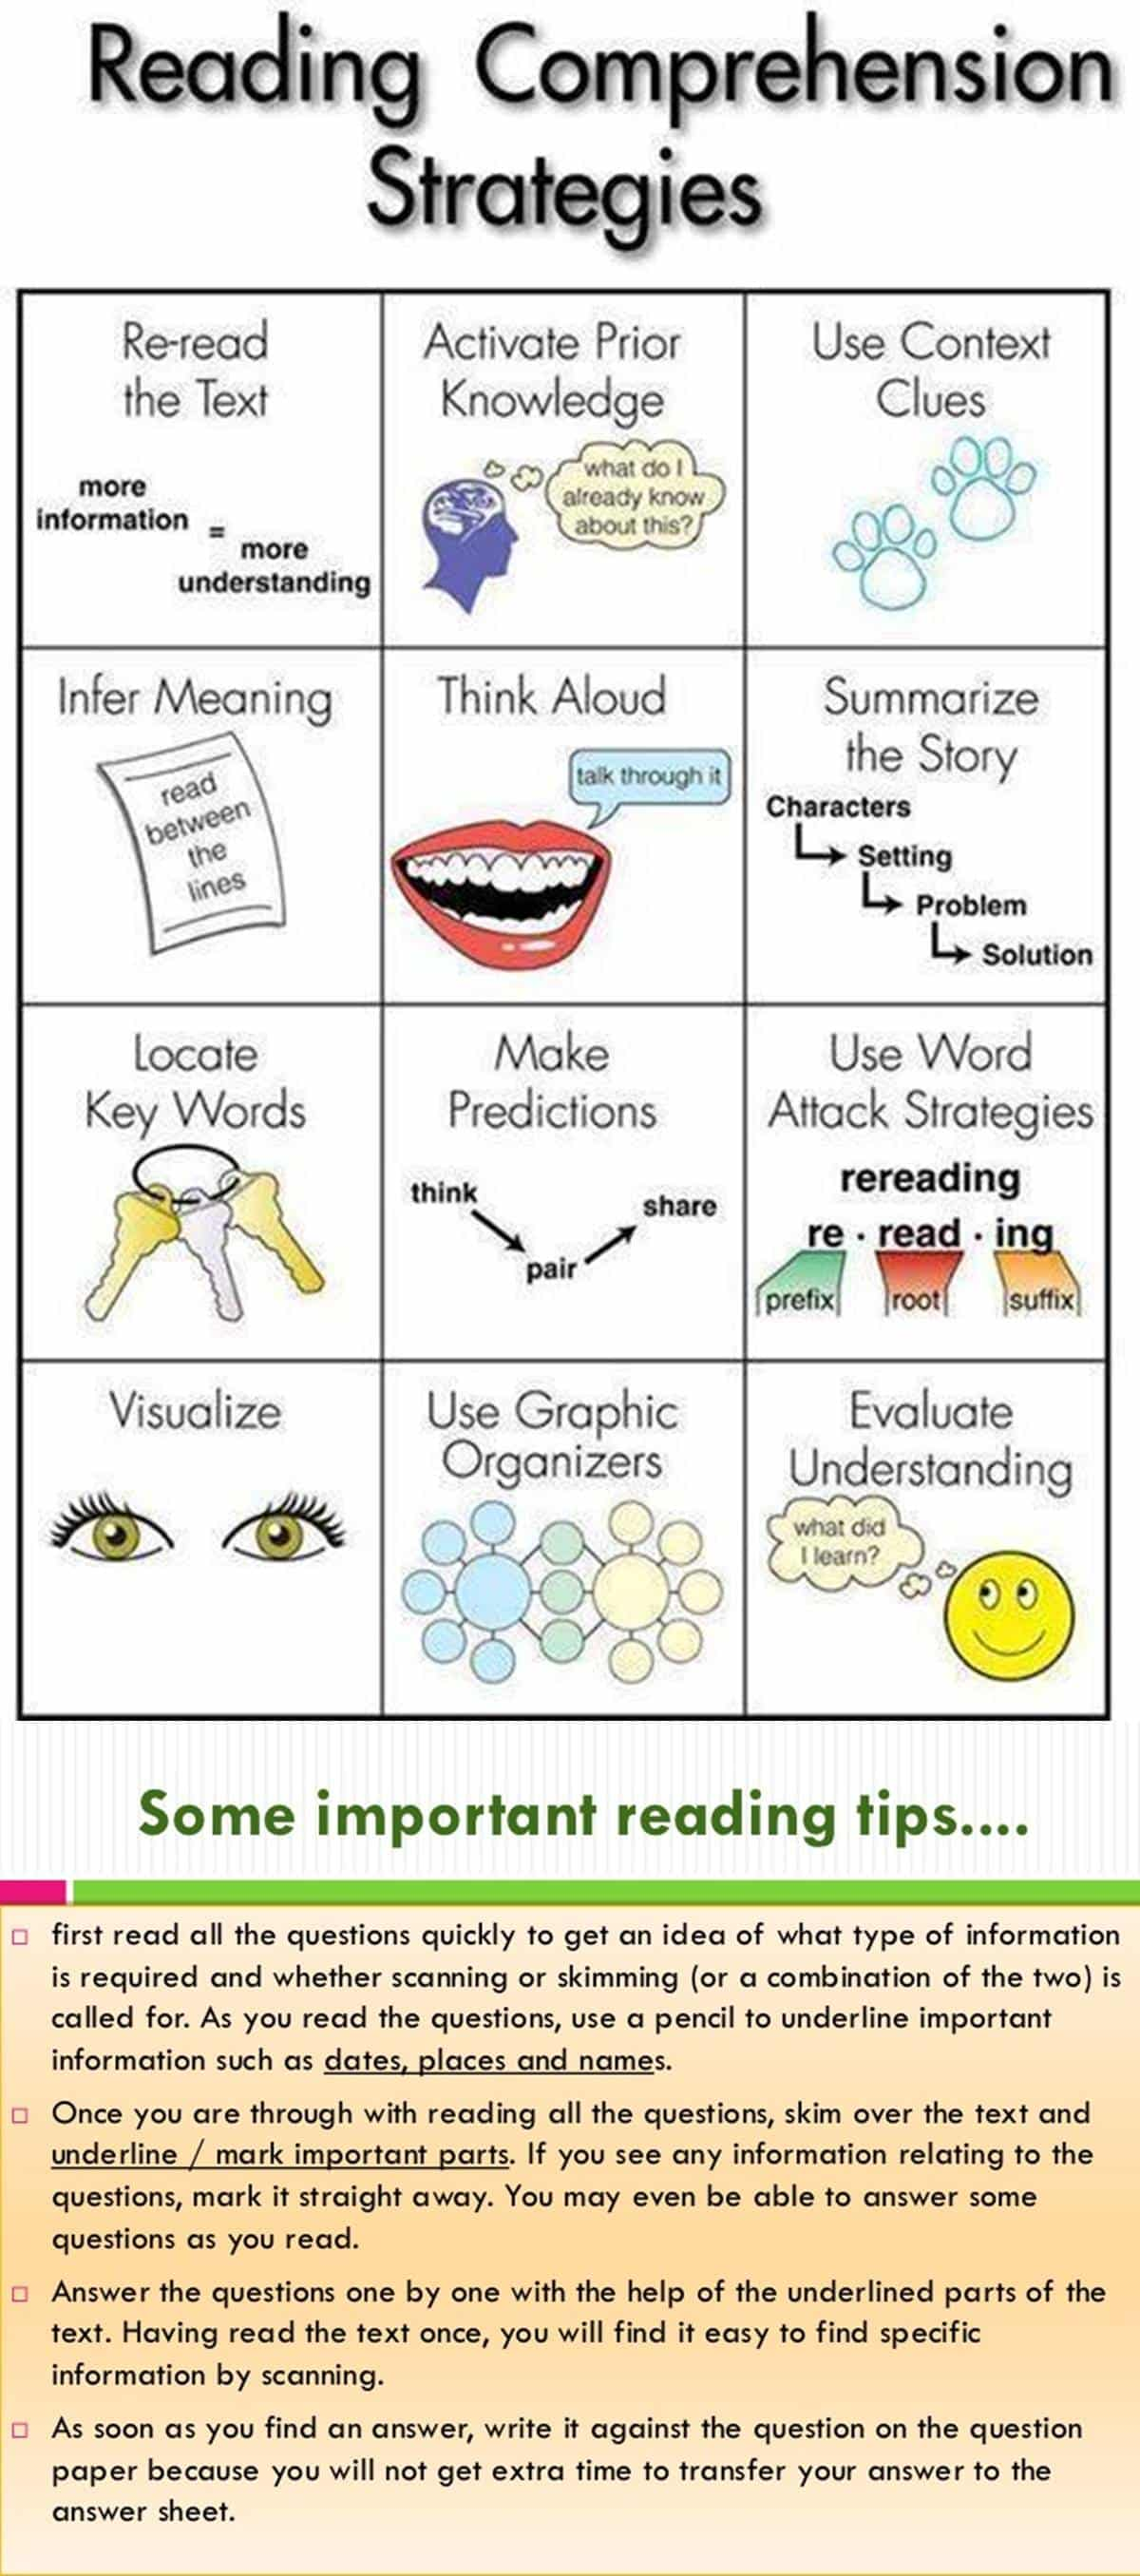 Reading Comprehension Strategies for English Language Learners 14